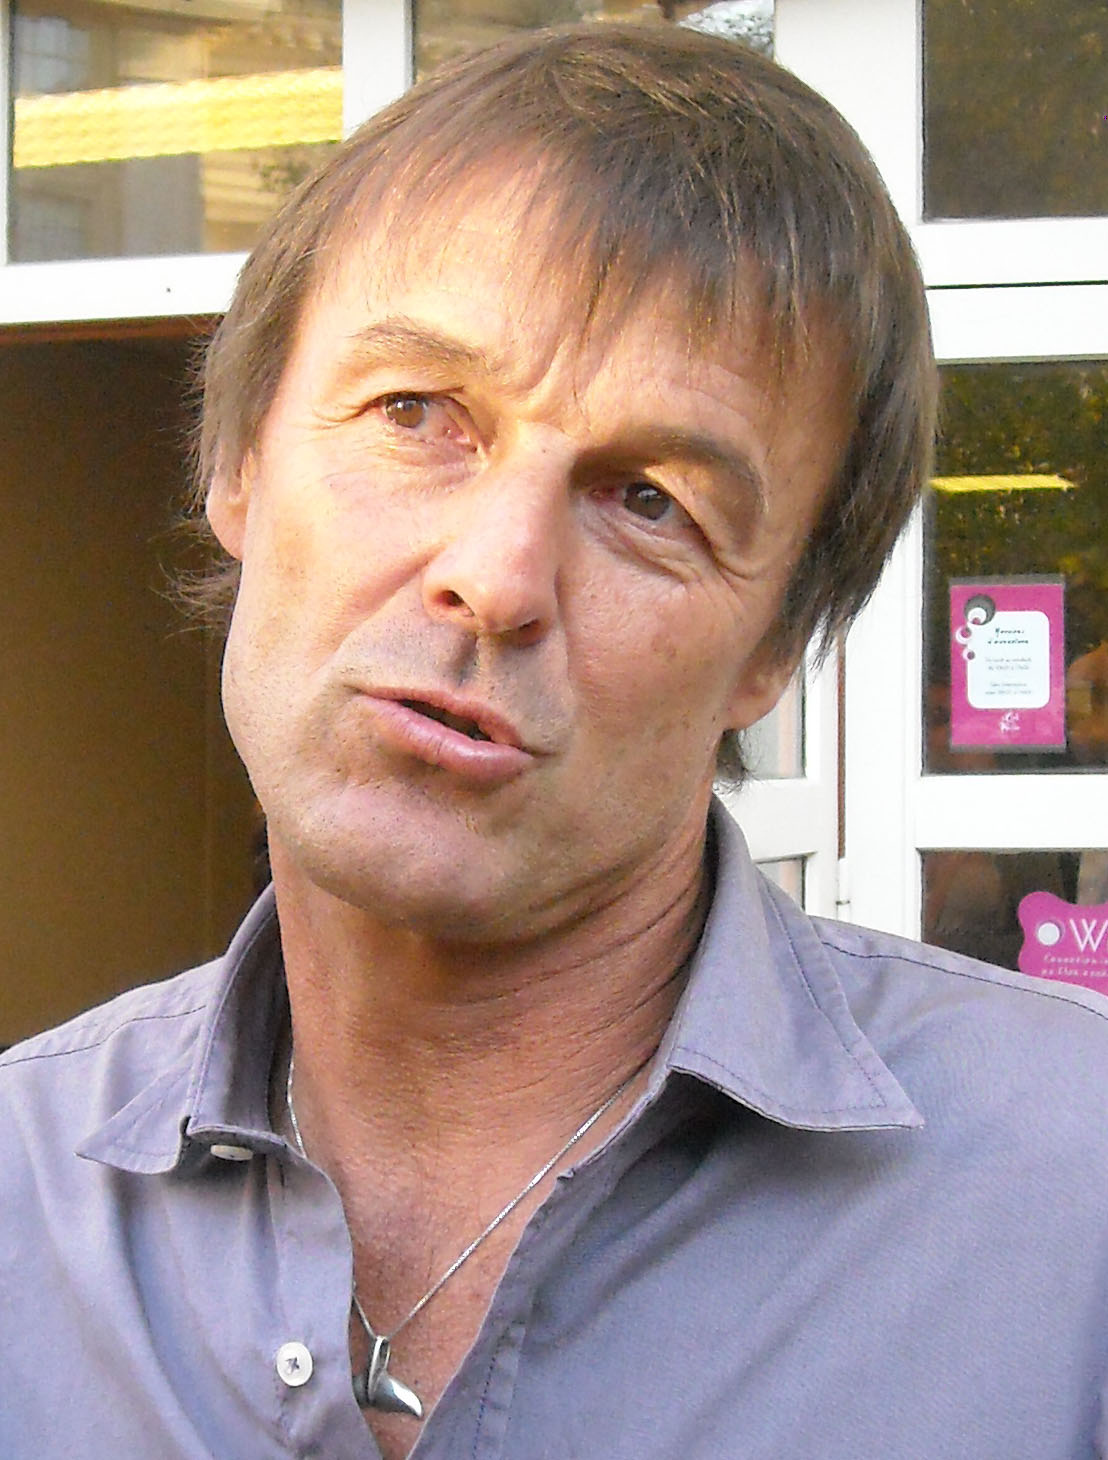 Nicolas Hulot le 7 septembre à Montpellier (photo : Mj)